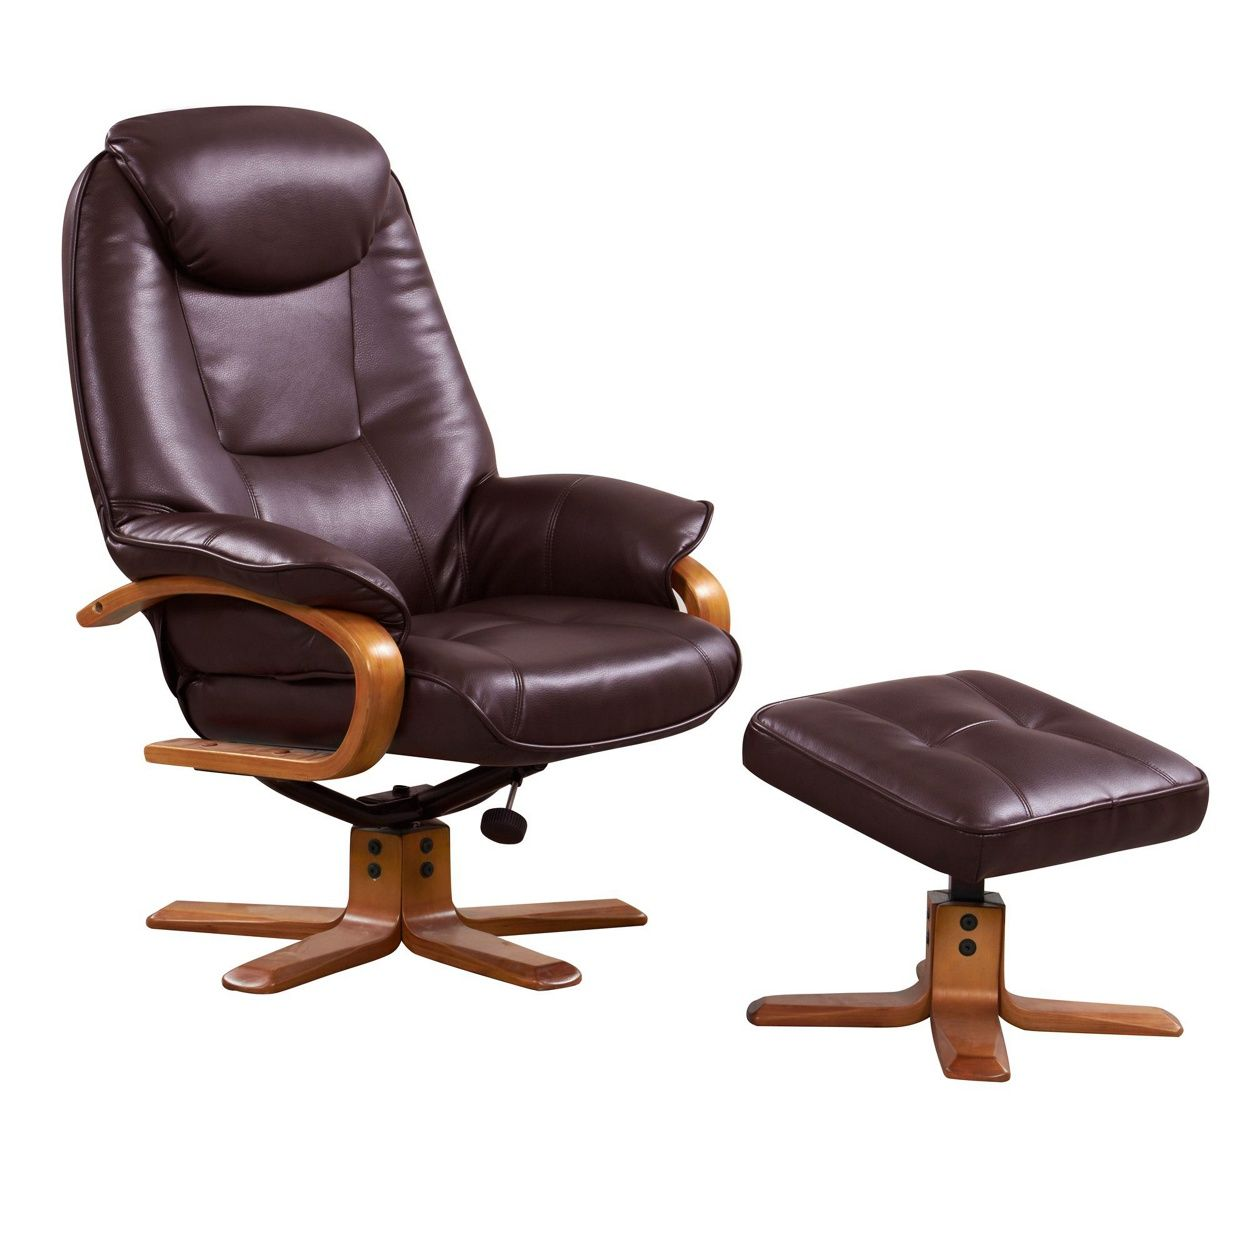 Marvelous Perfect For Relaxing, Our U0027Bjornu0027 Recliner Chair And Footstool Are Finished  In Smooth